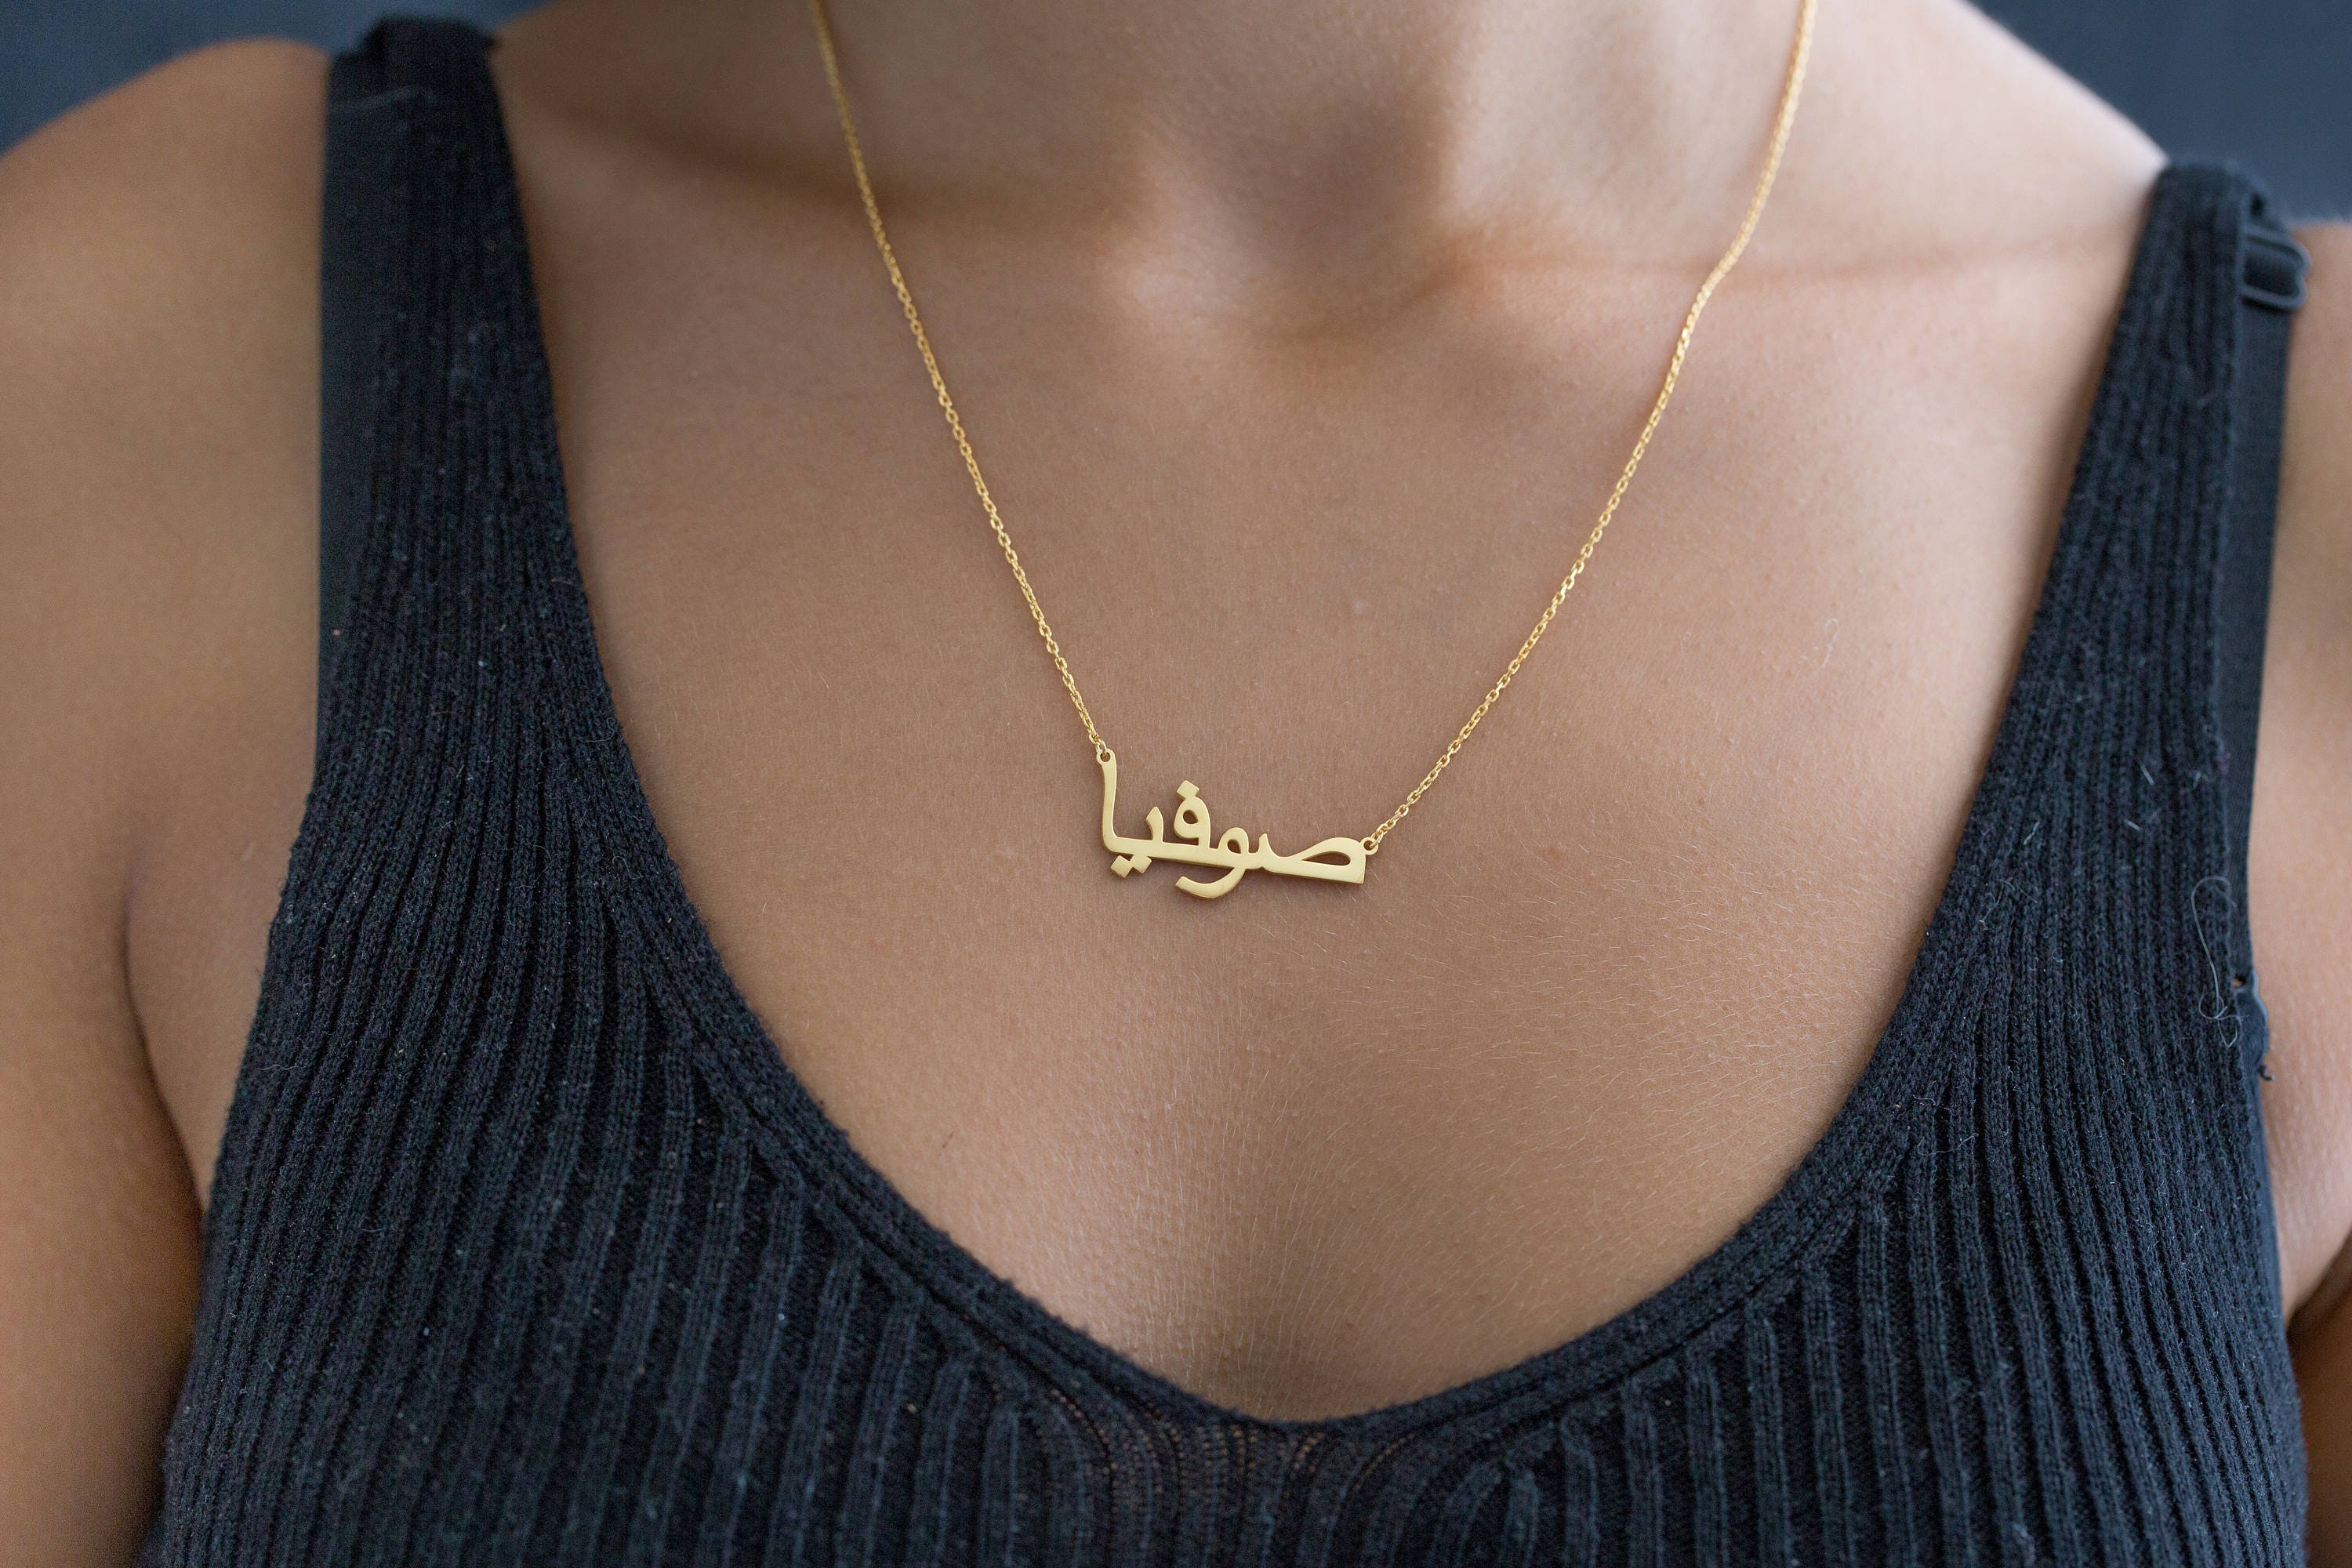 arabic jewelry customized chain any a pear calligraphy round personalized pendant fine name gold shape or k l es sam necklace rectangular standard with products